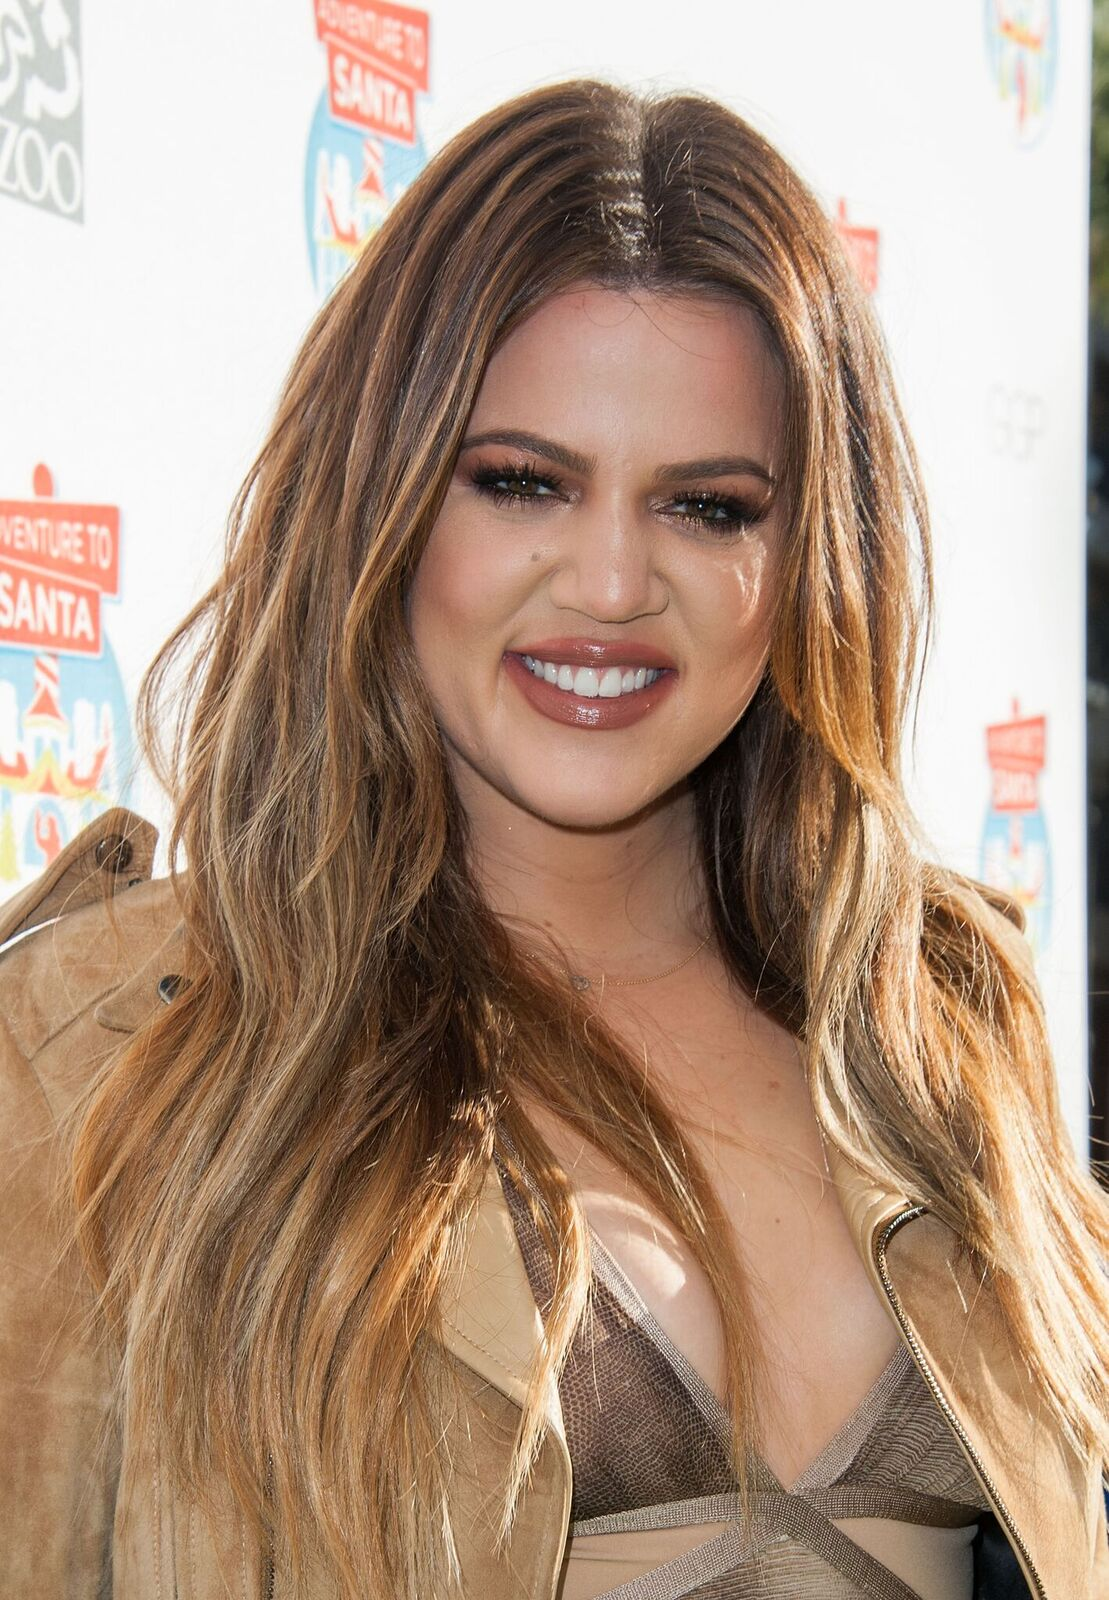 Khloe Kardashian arrives at Adventure To Santa A DreamWorks DreamPlace Santa Adventure At The Glendale Galleria at Glendale Galleria on November 6, 2014 in Glendale, California | Photo: Getty Images